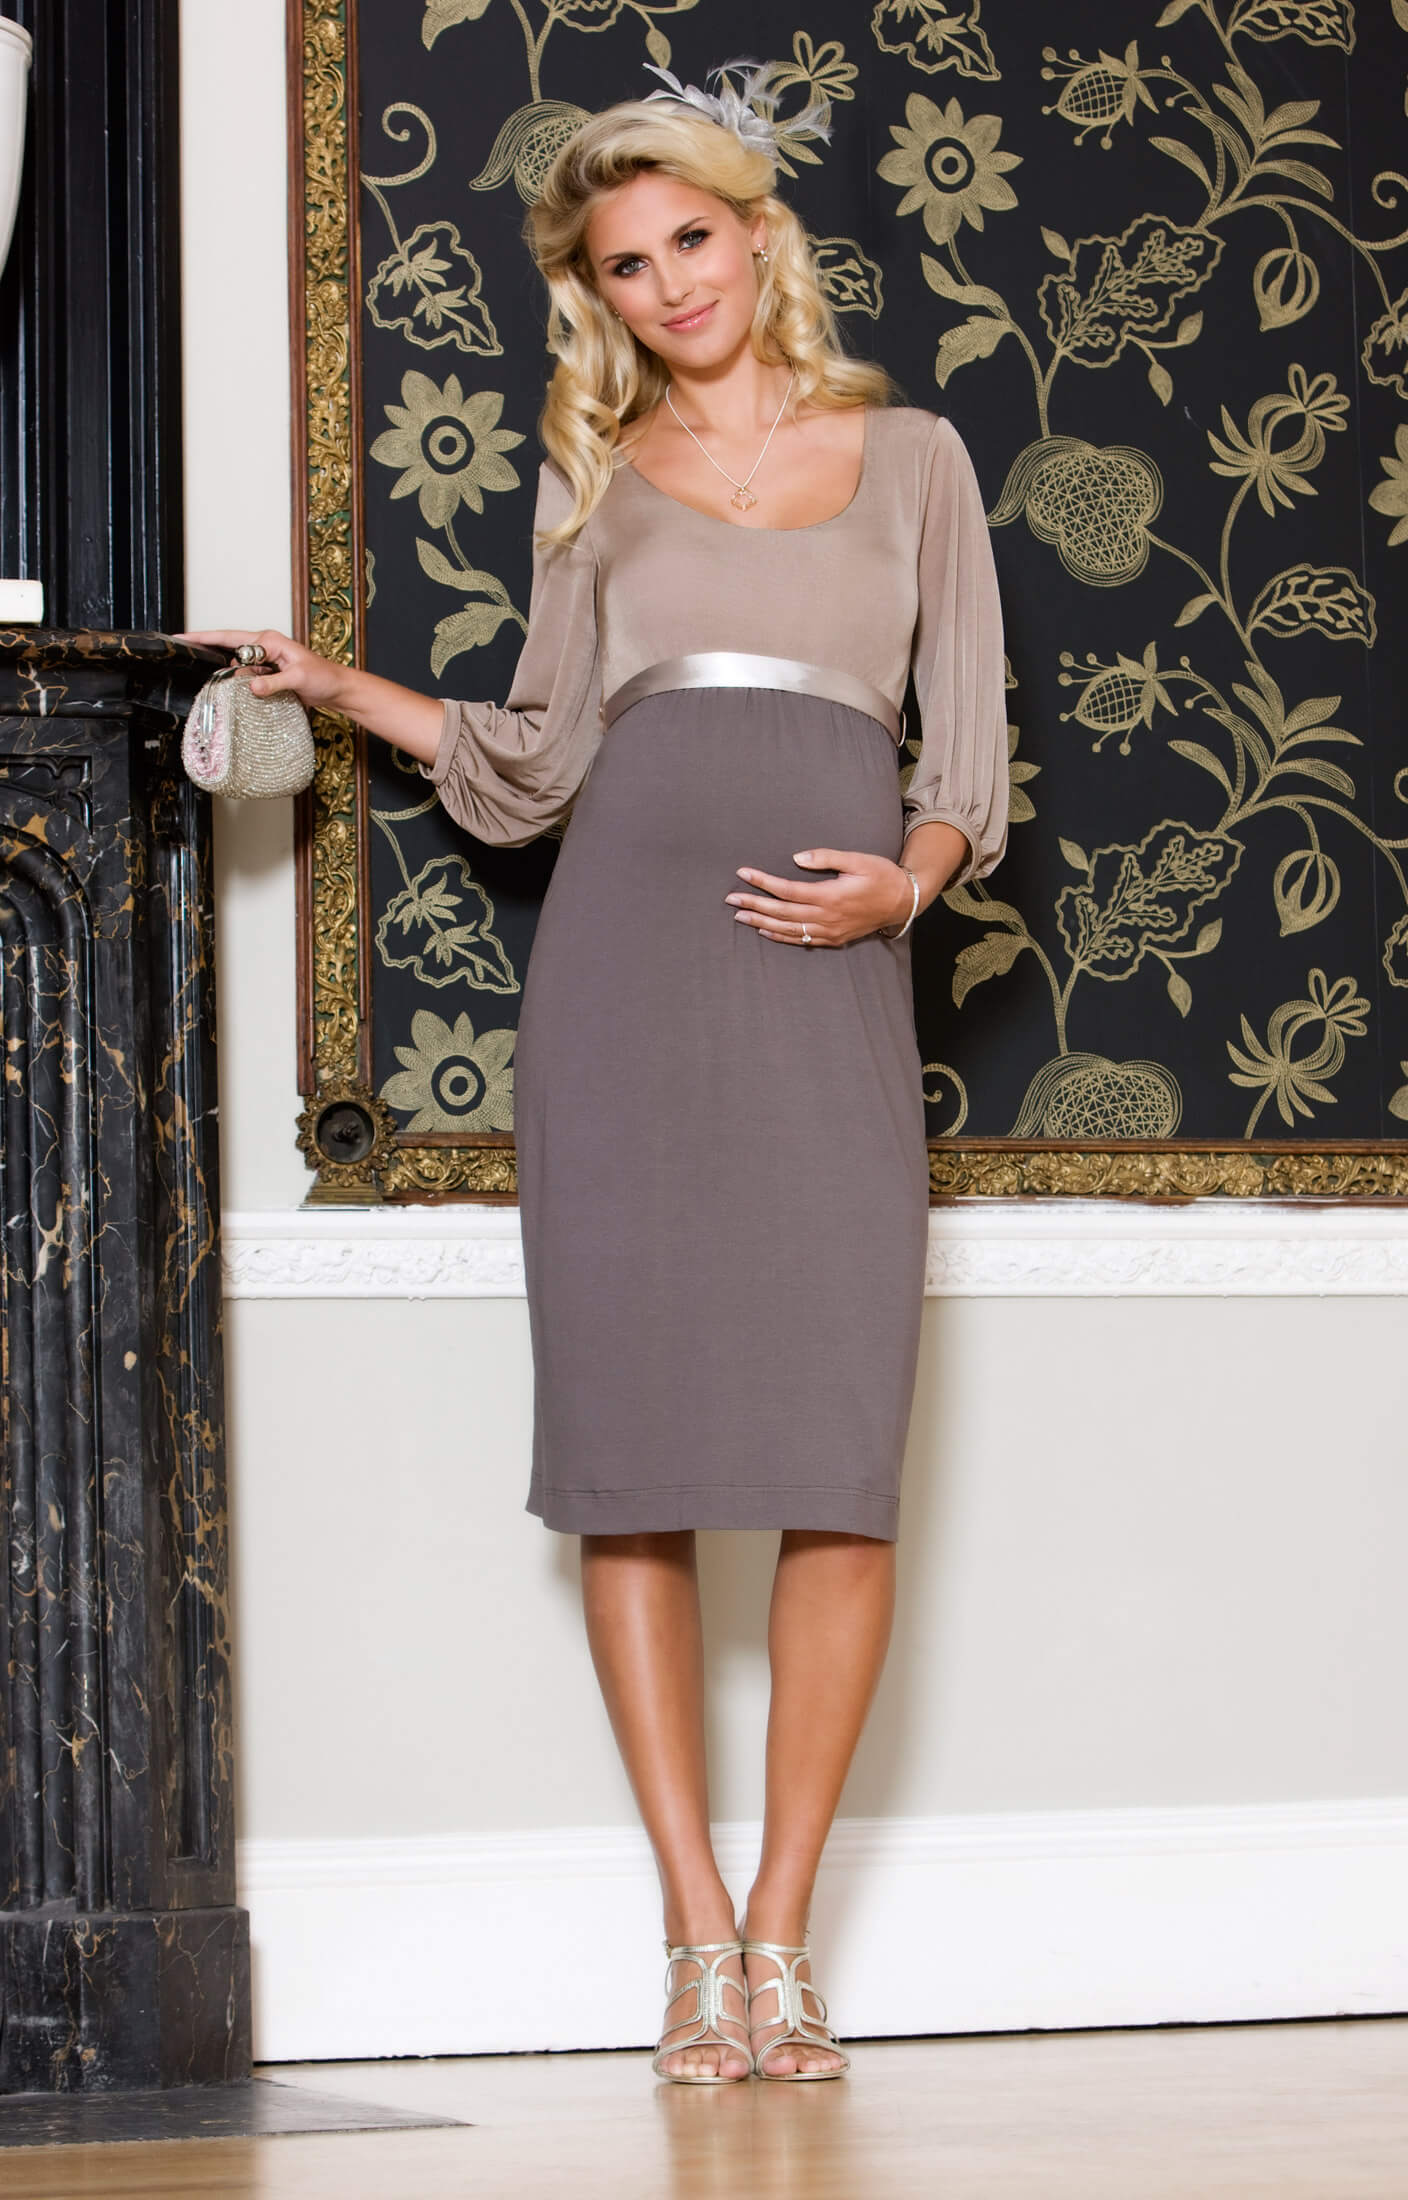 Sienna maternity dress dusk maternity wedding dresses evening sienna maternity dress dusk by tiffany rose ombrellifo Gallery